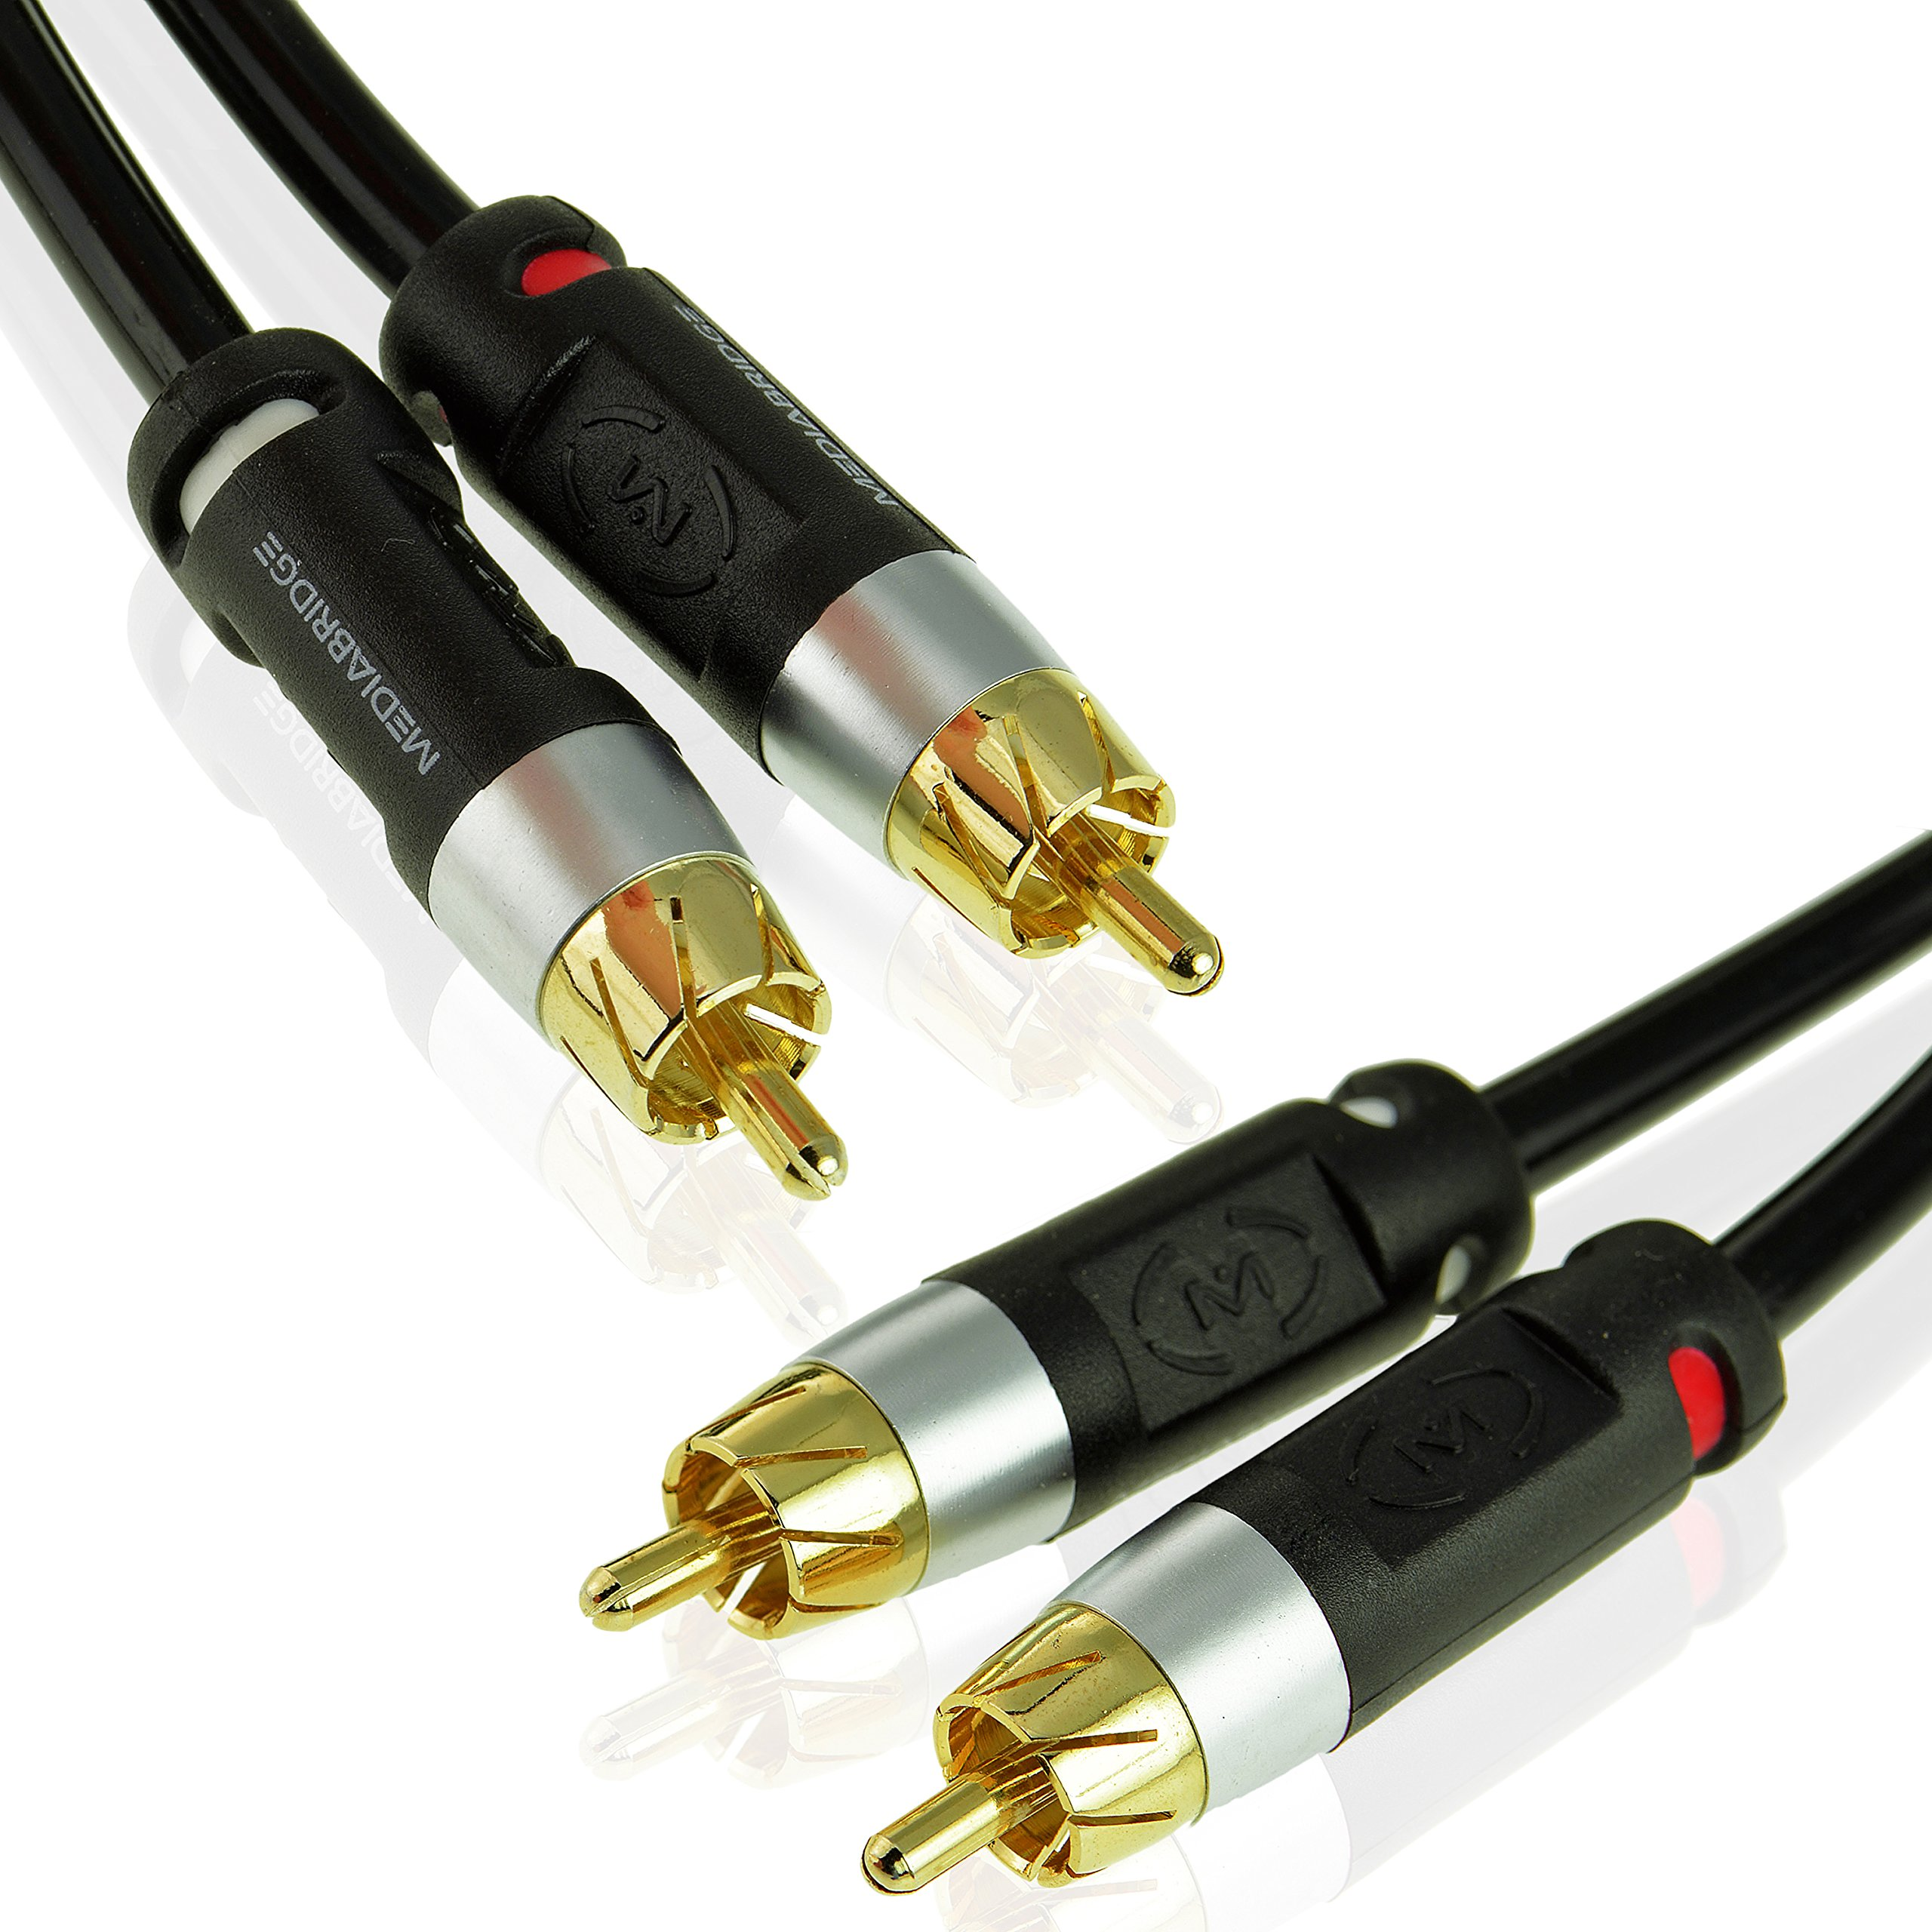 Mediabridge Stereo Cable with Left and Right Audio (12 Feet) - RCA to RCA Gold-Plated Connectors - (Part# MPC-ALR-12B) by Mediabridge